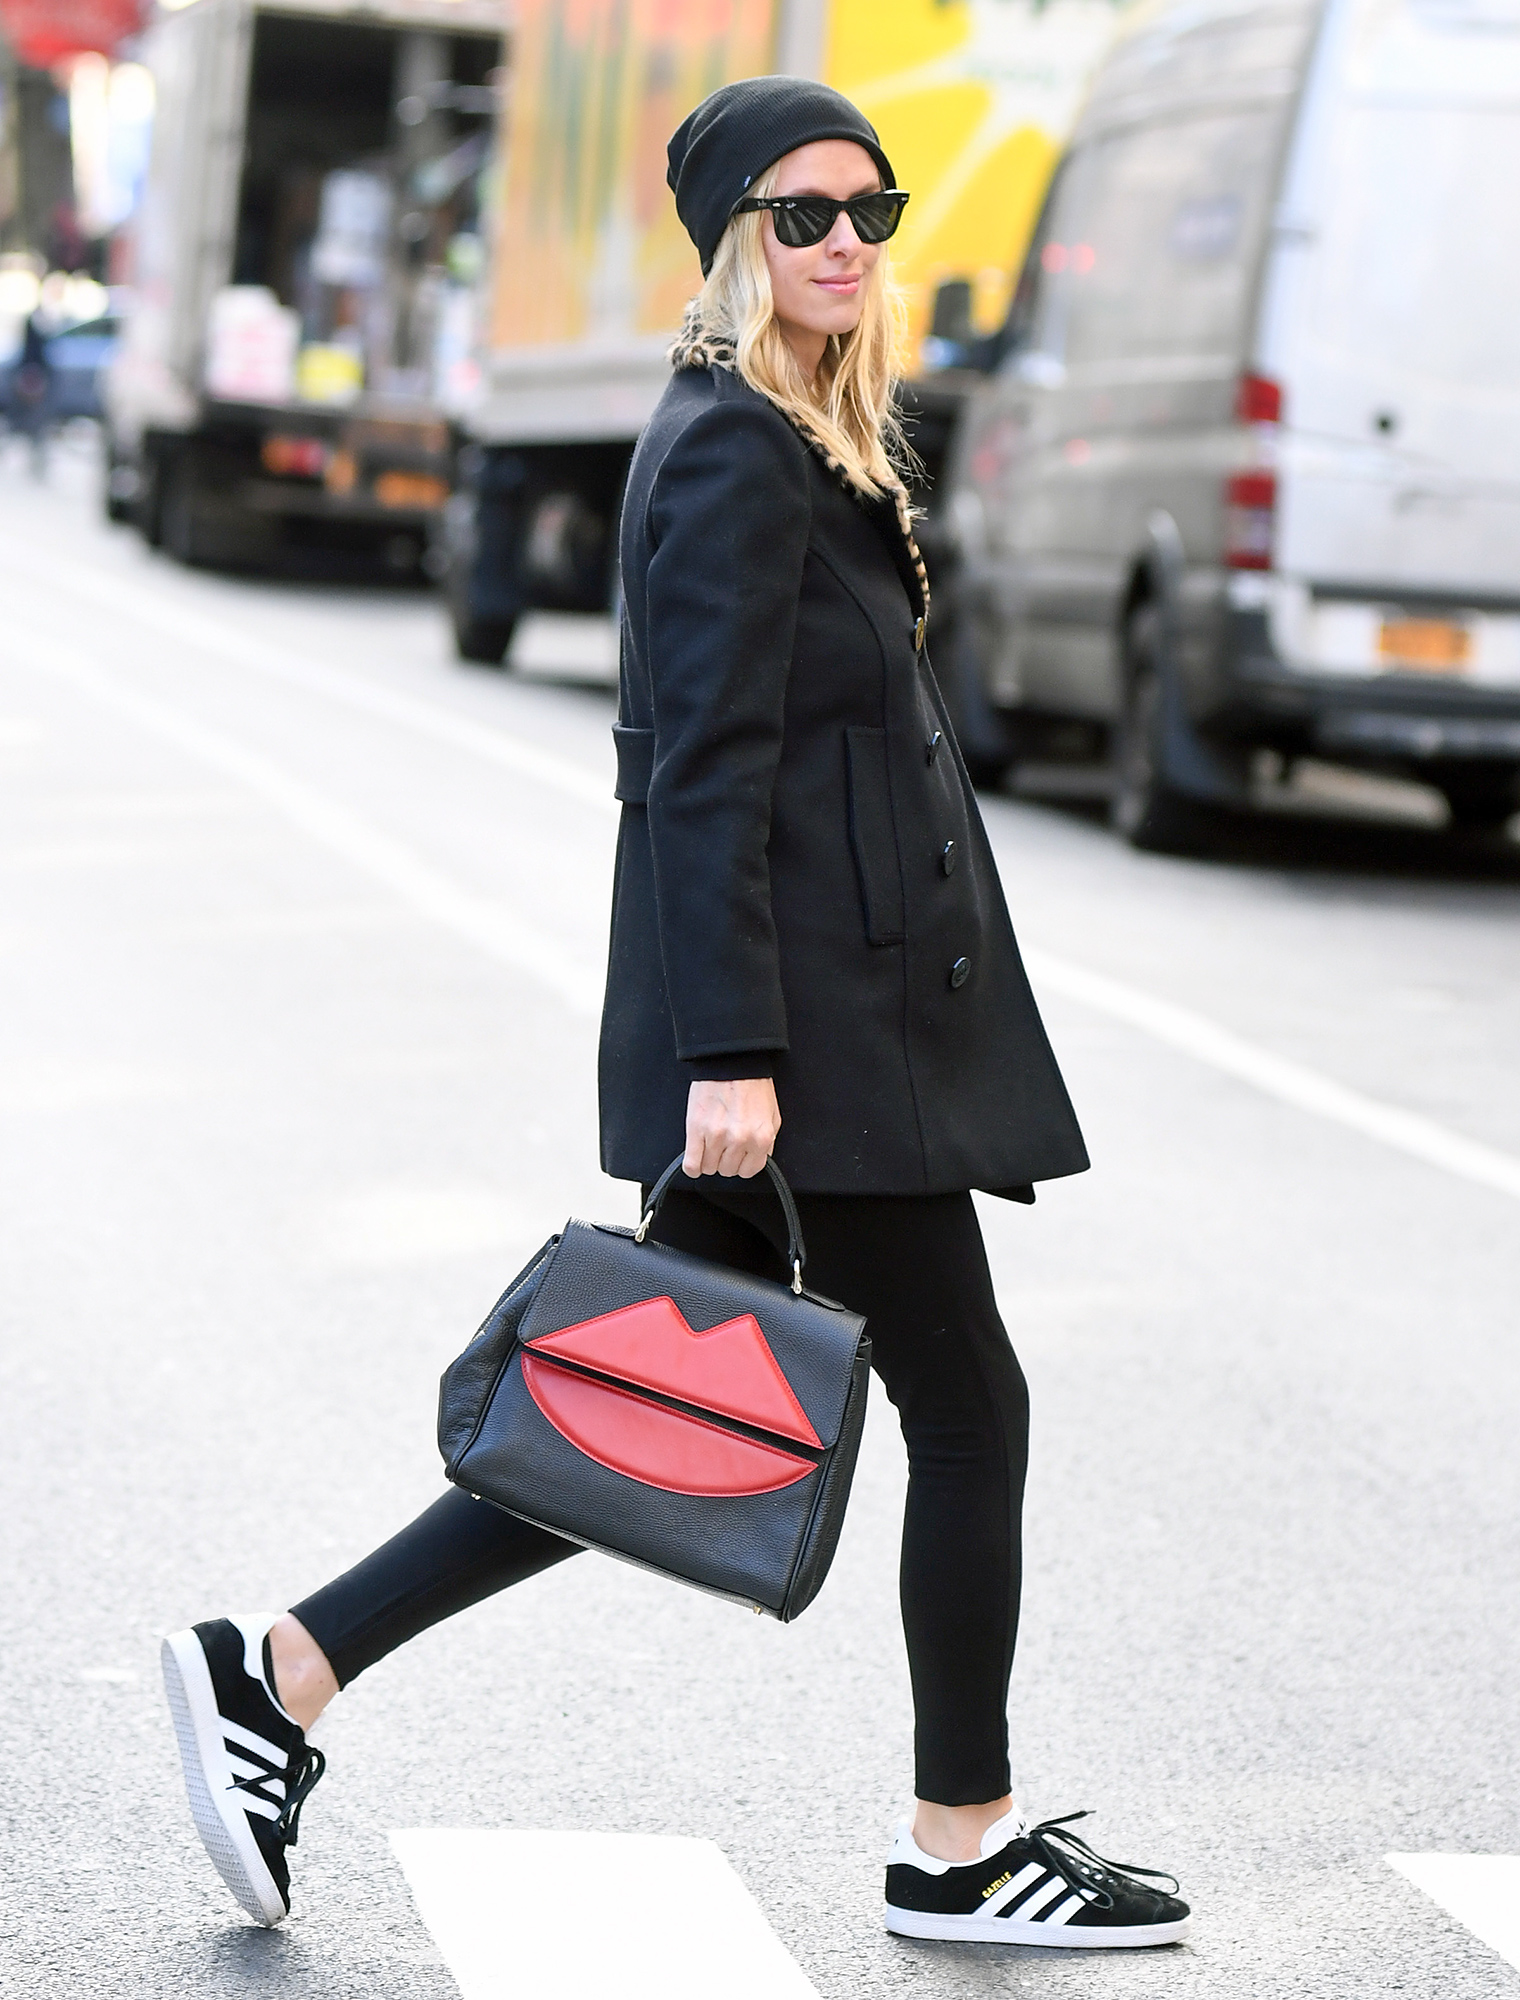 Nicky Hilton steps out for a walk in the city this morning